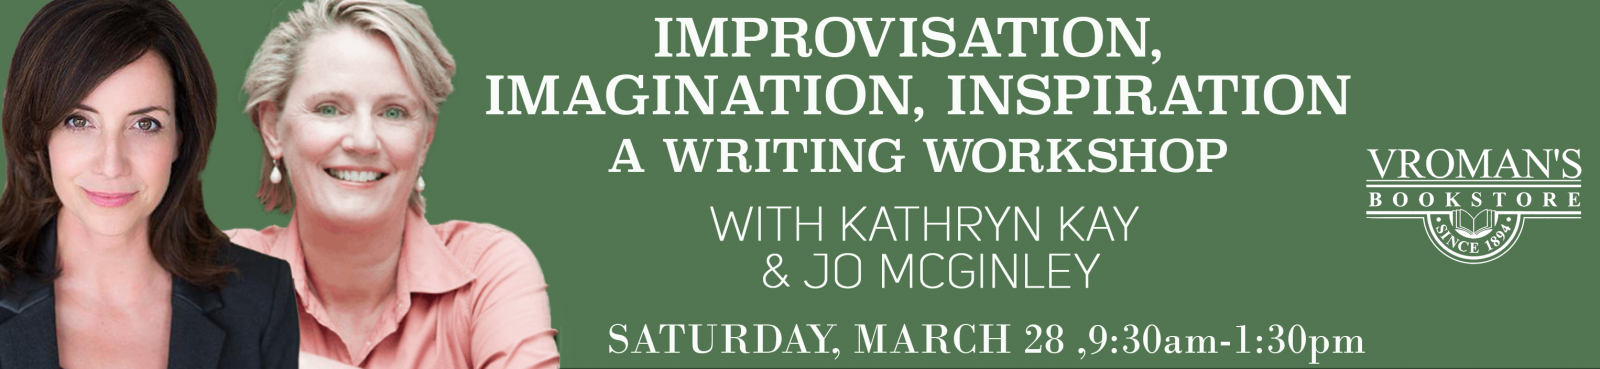 Improvisation, Imagination, Inspiration: Writing Workshop on Saturday March 28th from 9:30am-1:30pm. Please call us at (626)449-5320 to sign up.